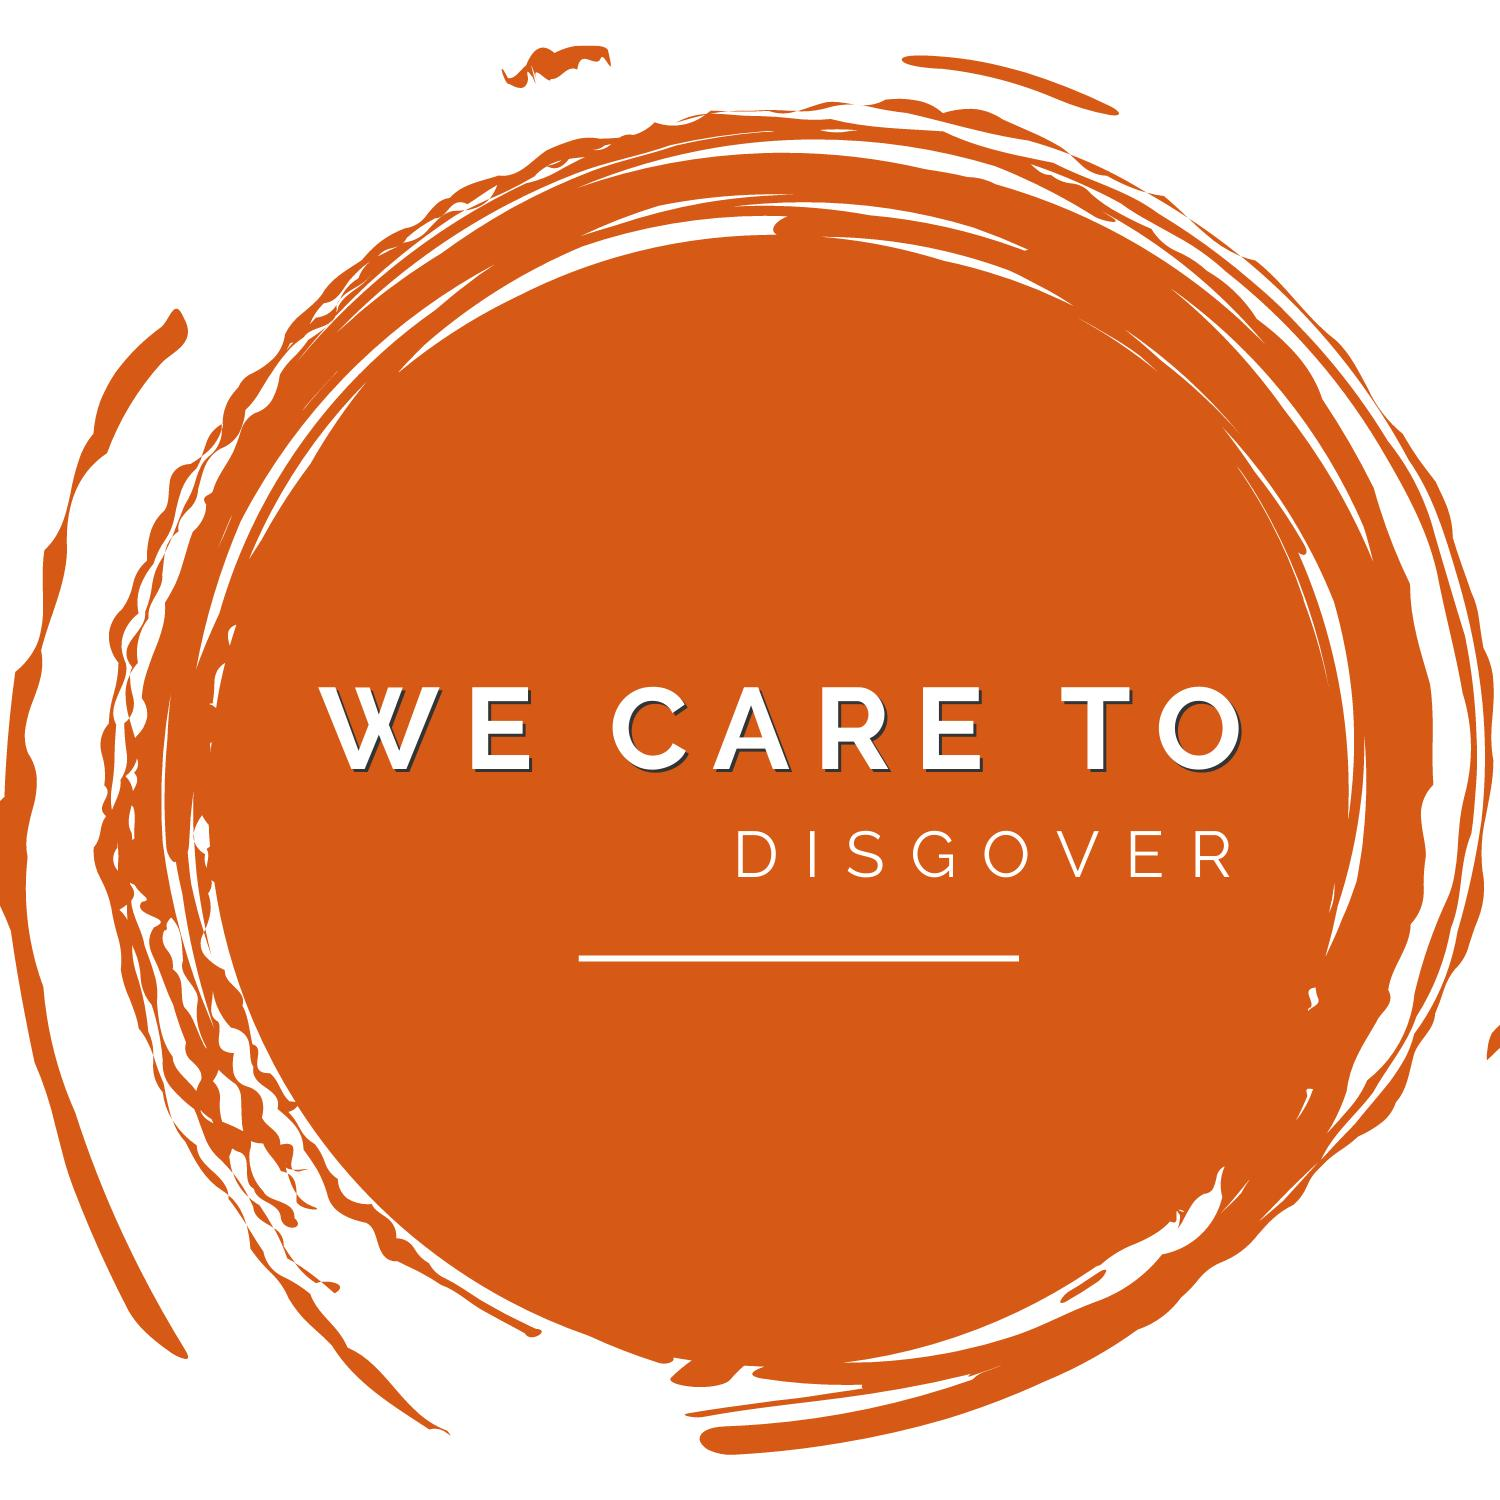 We Care to DisGover